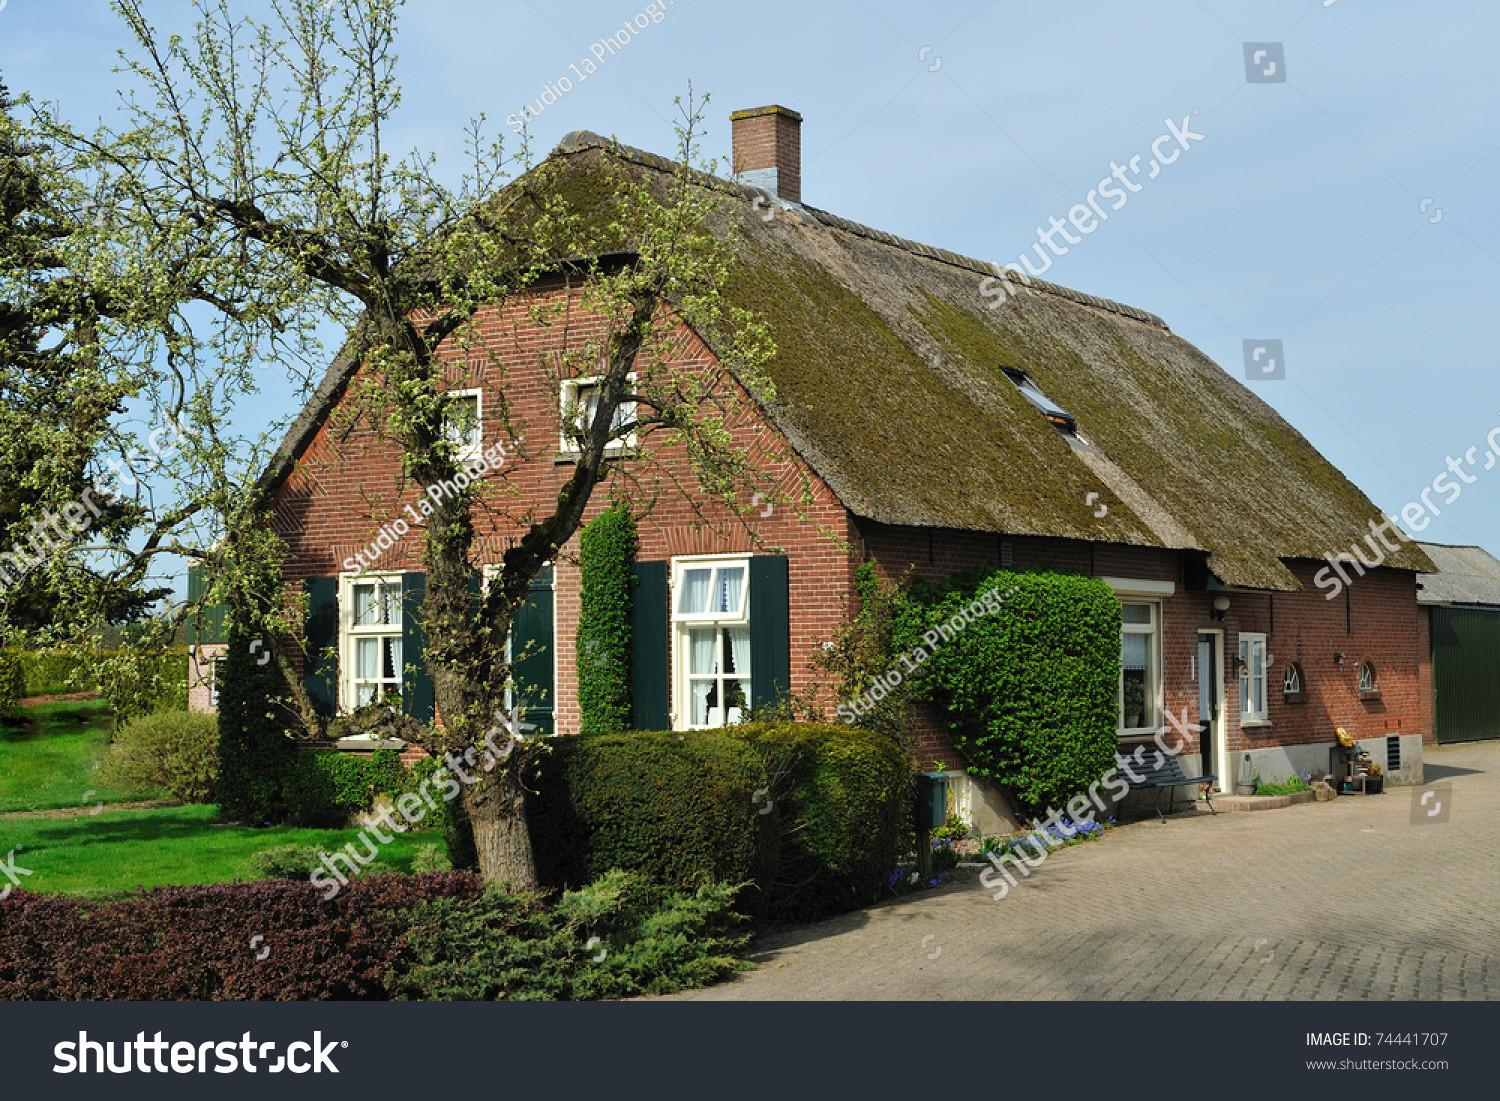 Dutch Farm House Whit Thatched Roof Stock